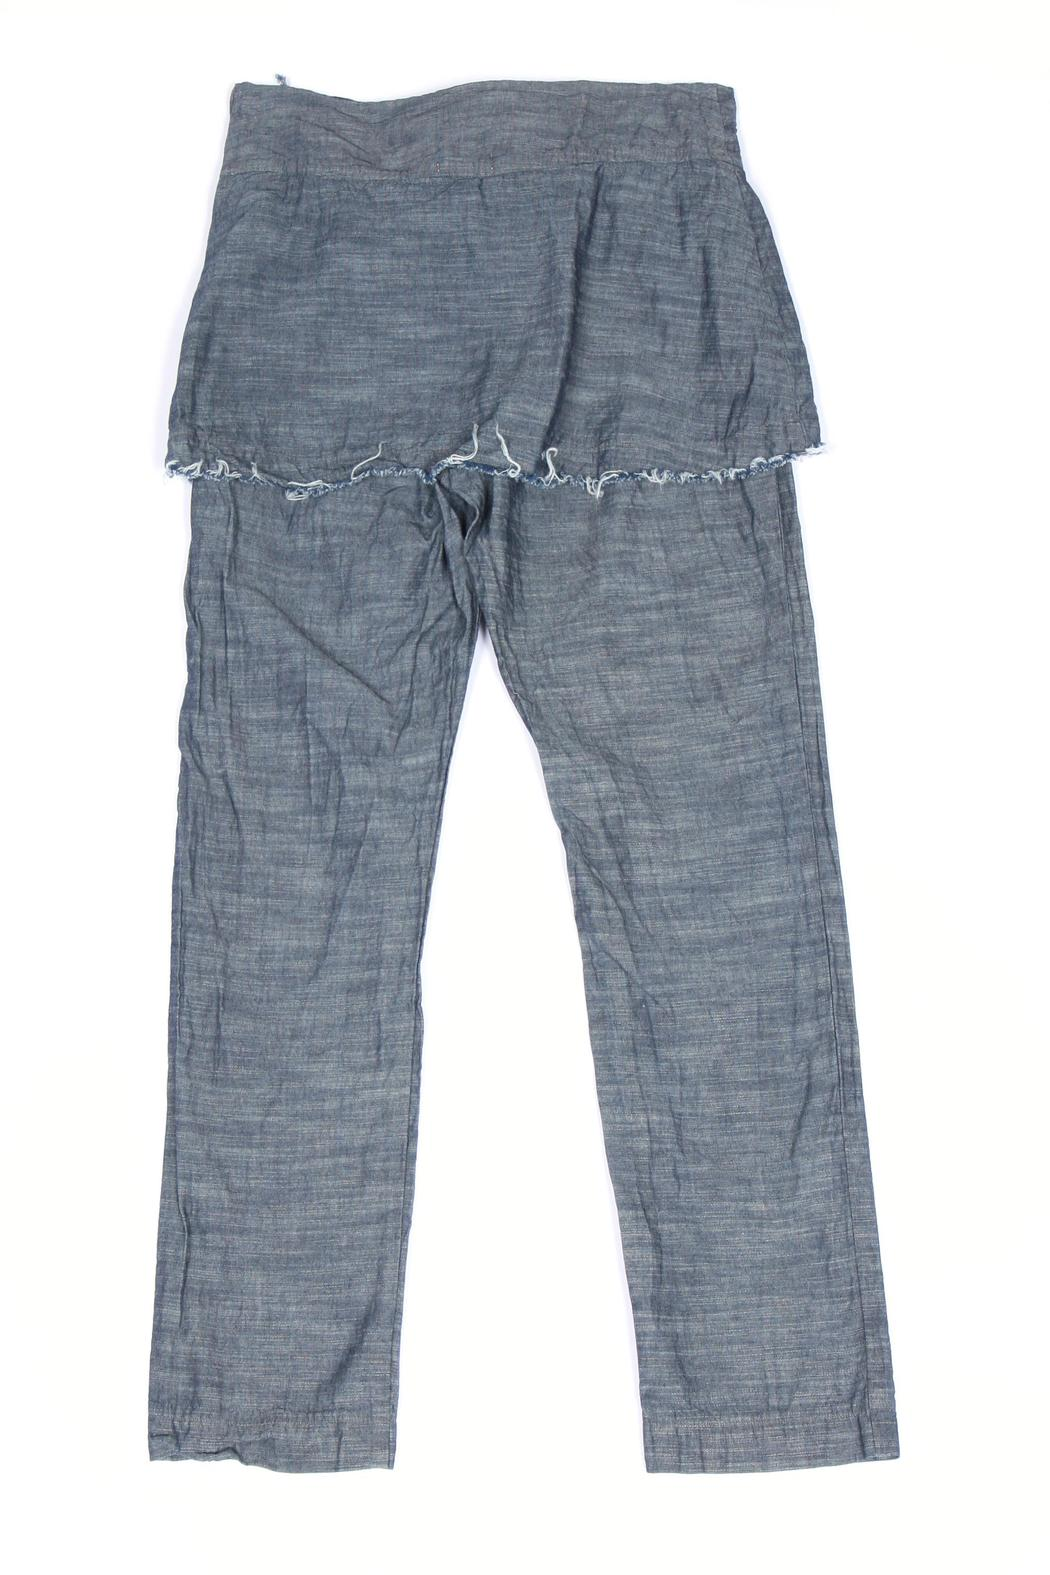 Prairie Underground Chambray Underwing Pants - Front Full Image